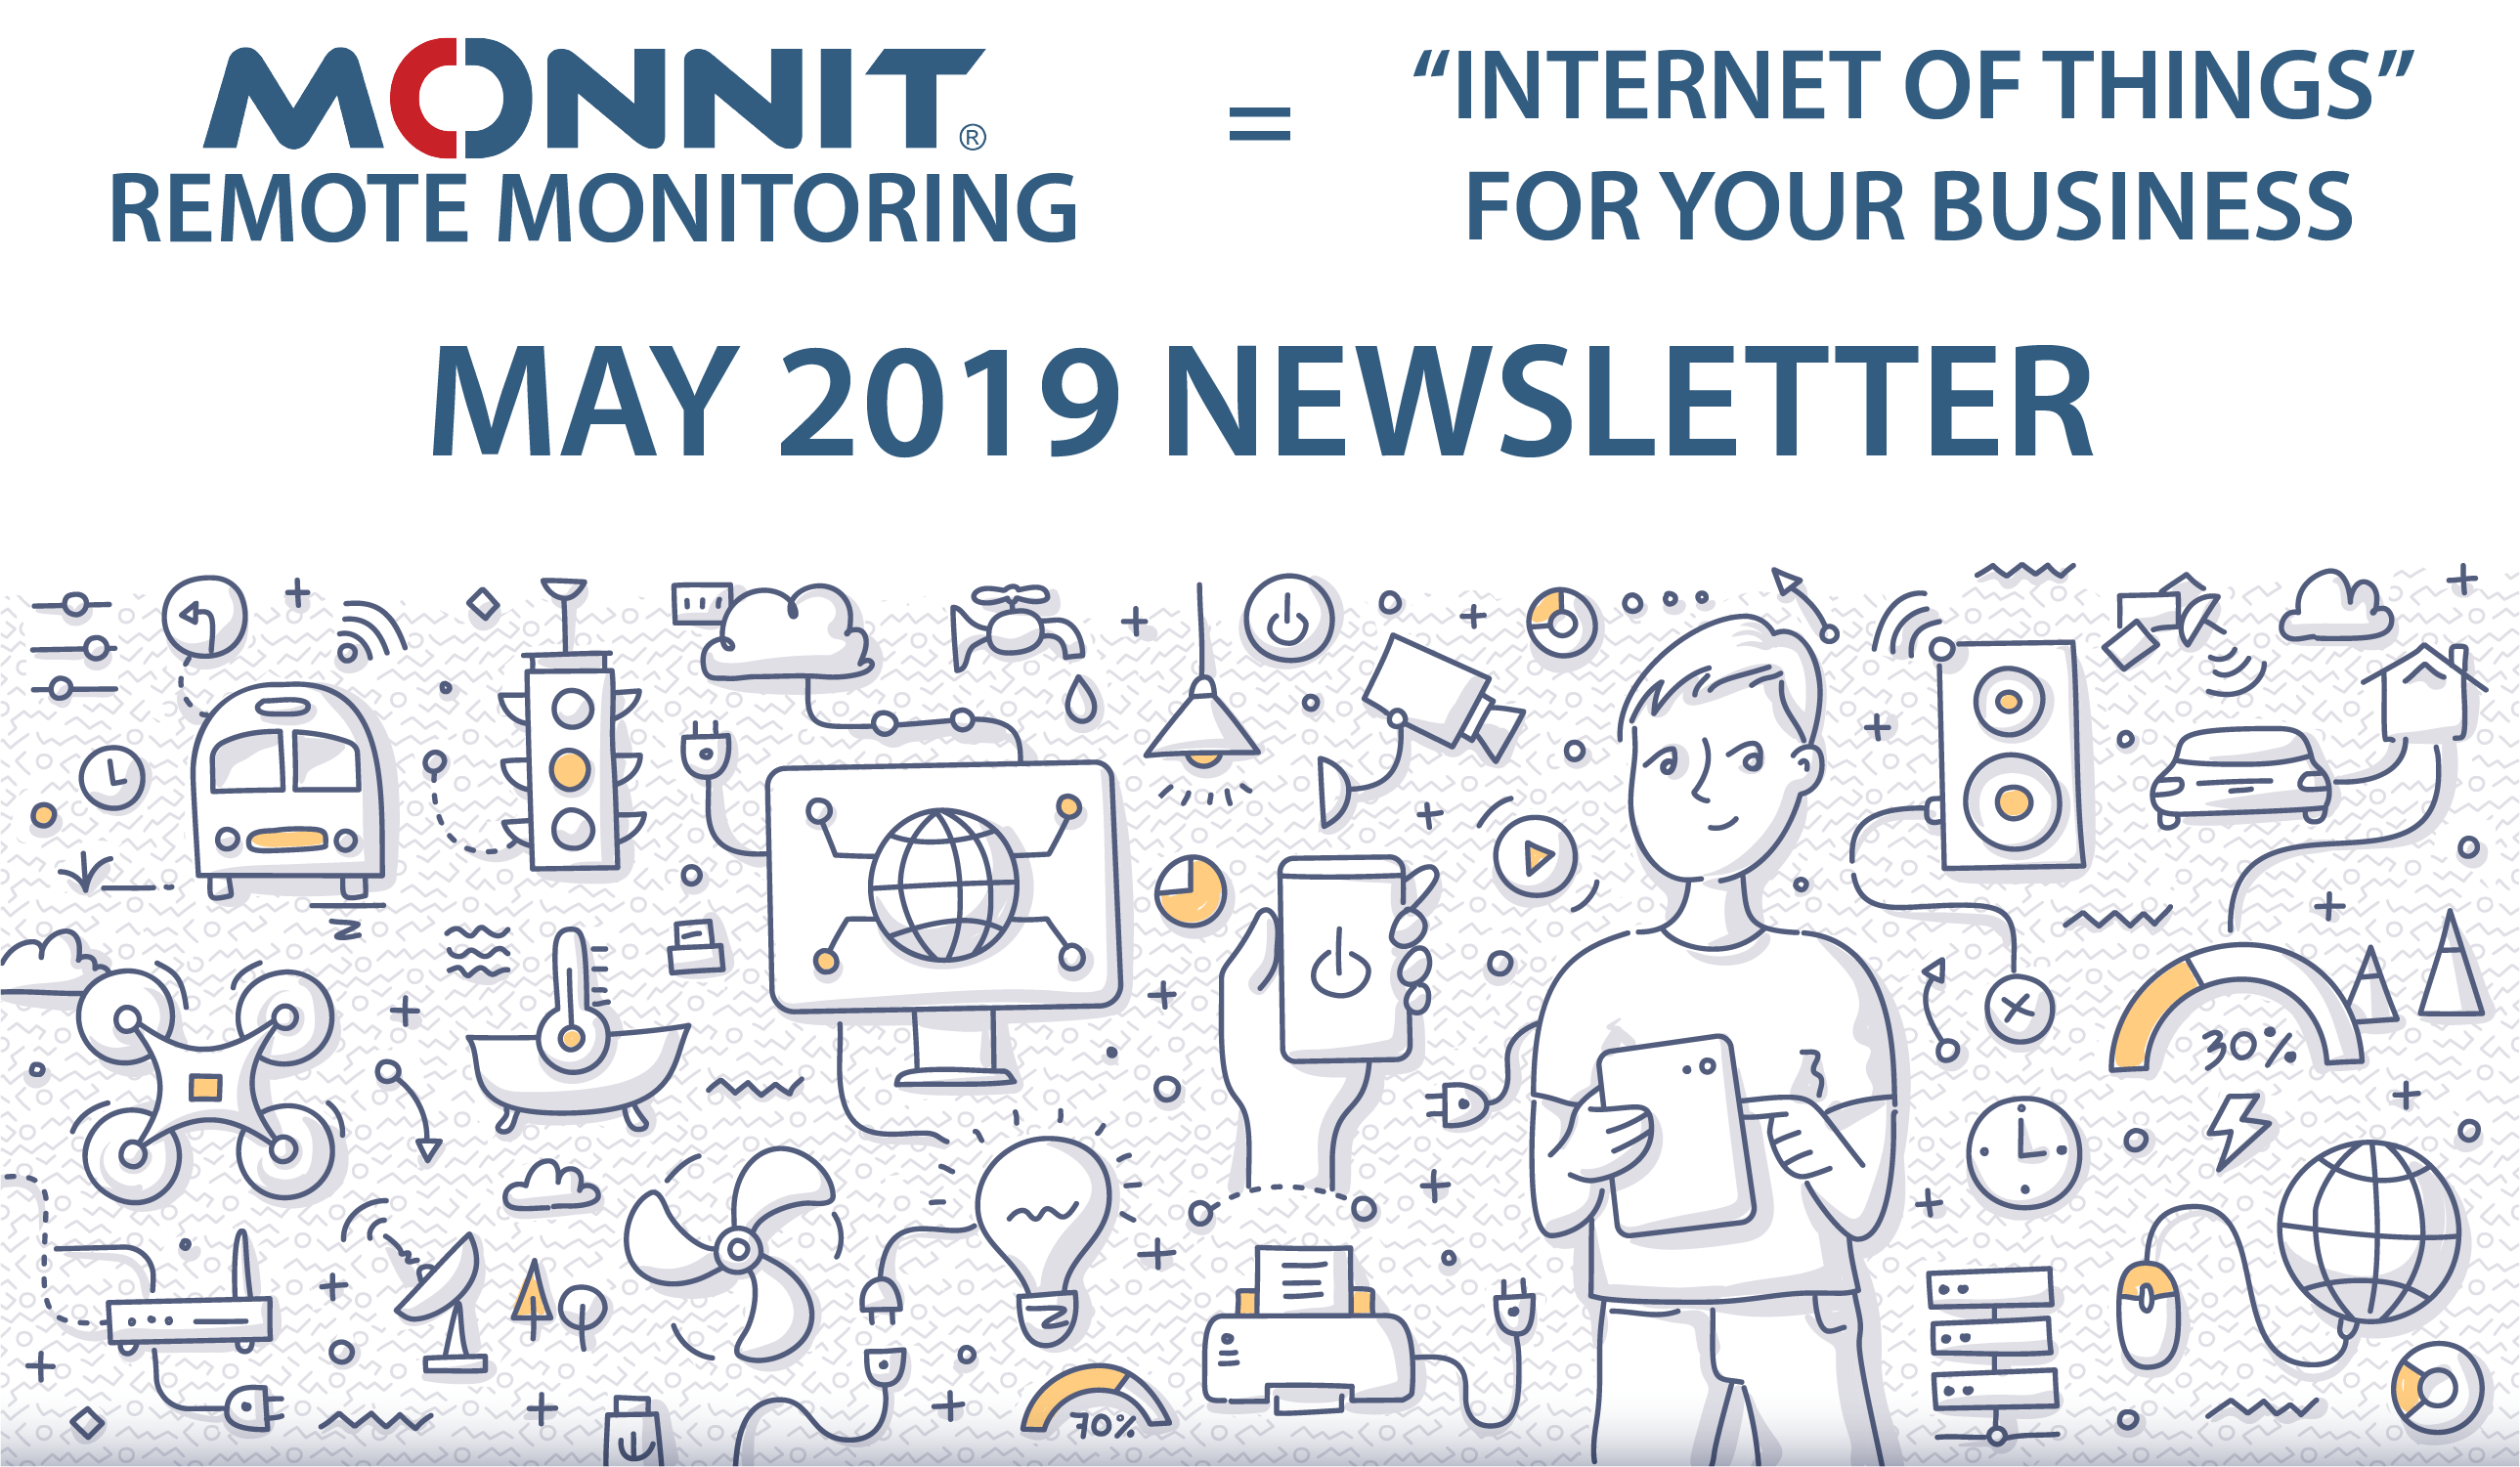 Monnit Monthly Newsletter - May 2019